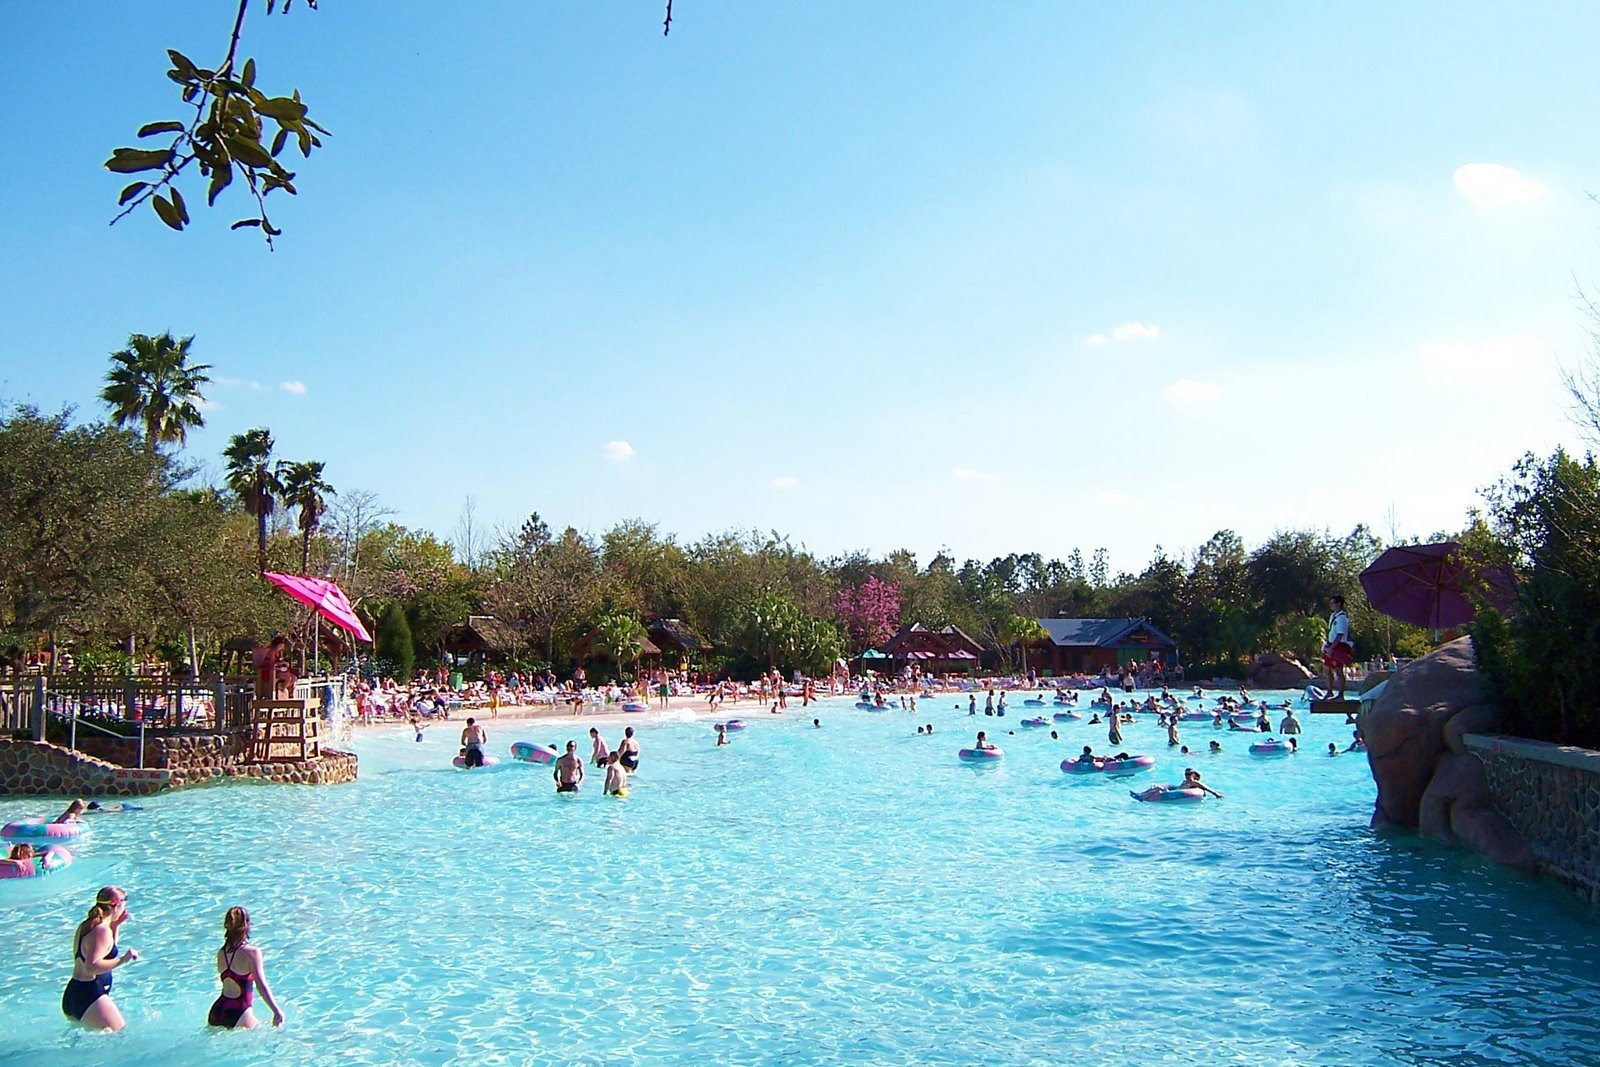 disney_blizzard_beach_waterpark - Busch Garden